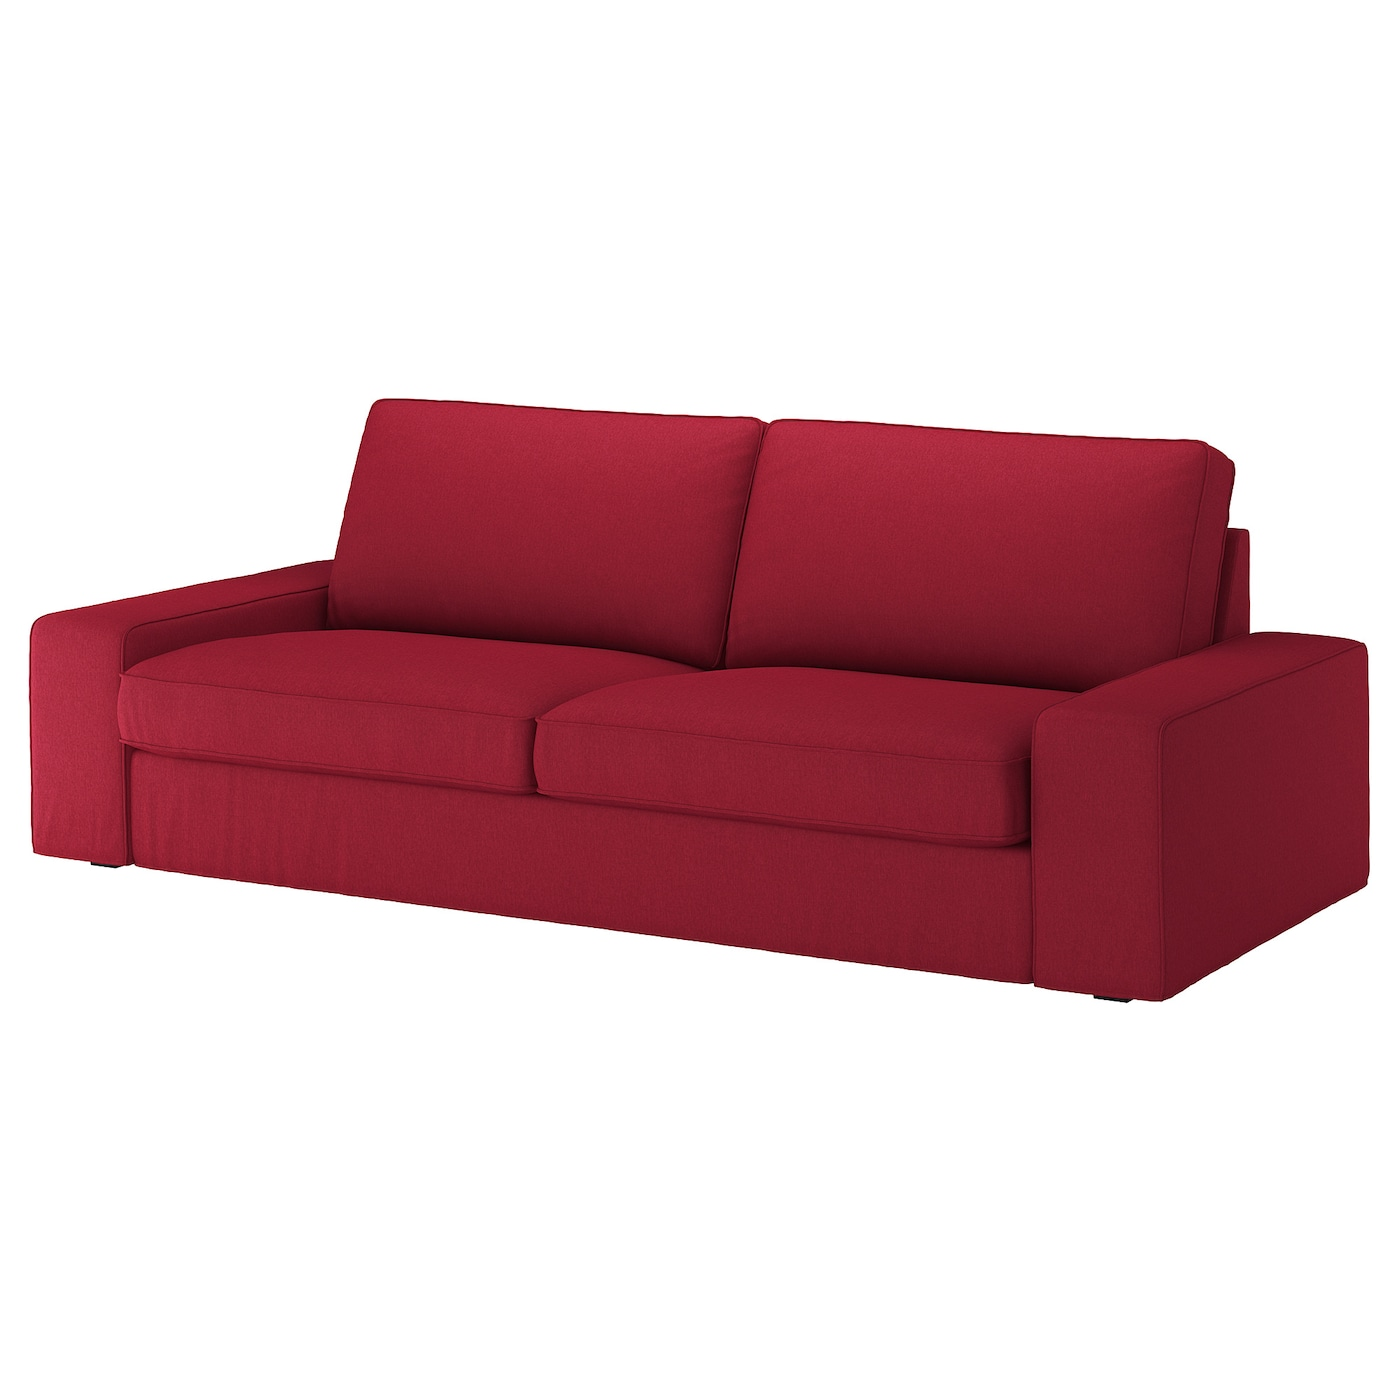 NEW IKEA KIVIK Chaise Lounge Cover Slipcover Opened Package Ingebo Bright Red